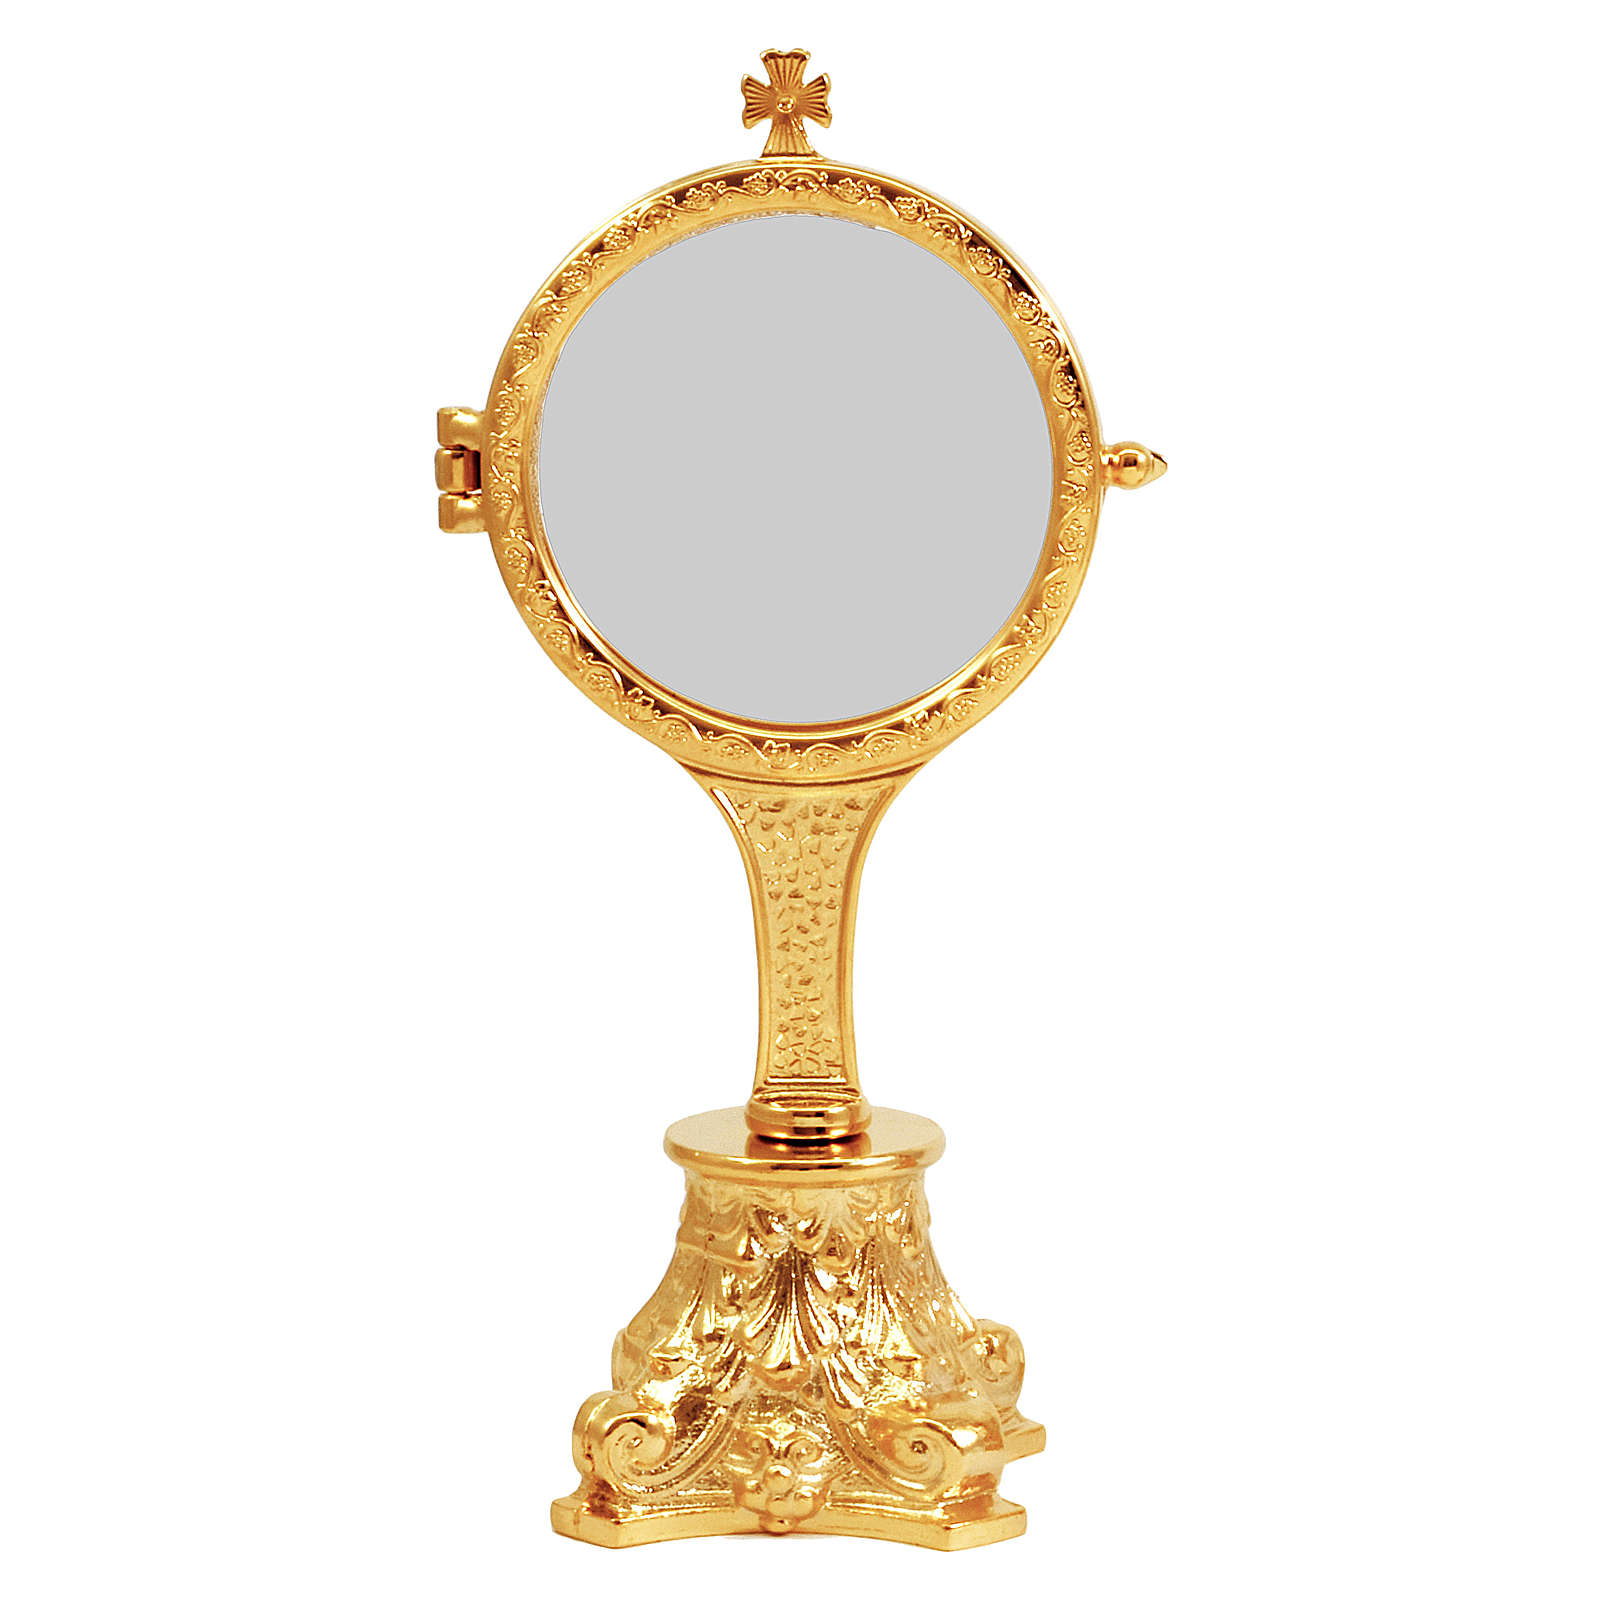 Golden monstrance with decorative capital as base, h. 20 cm 4